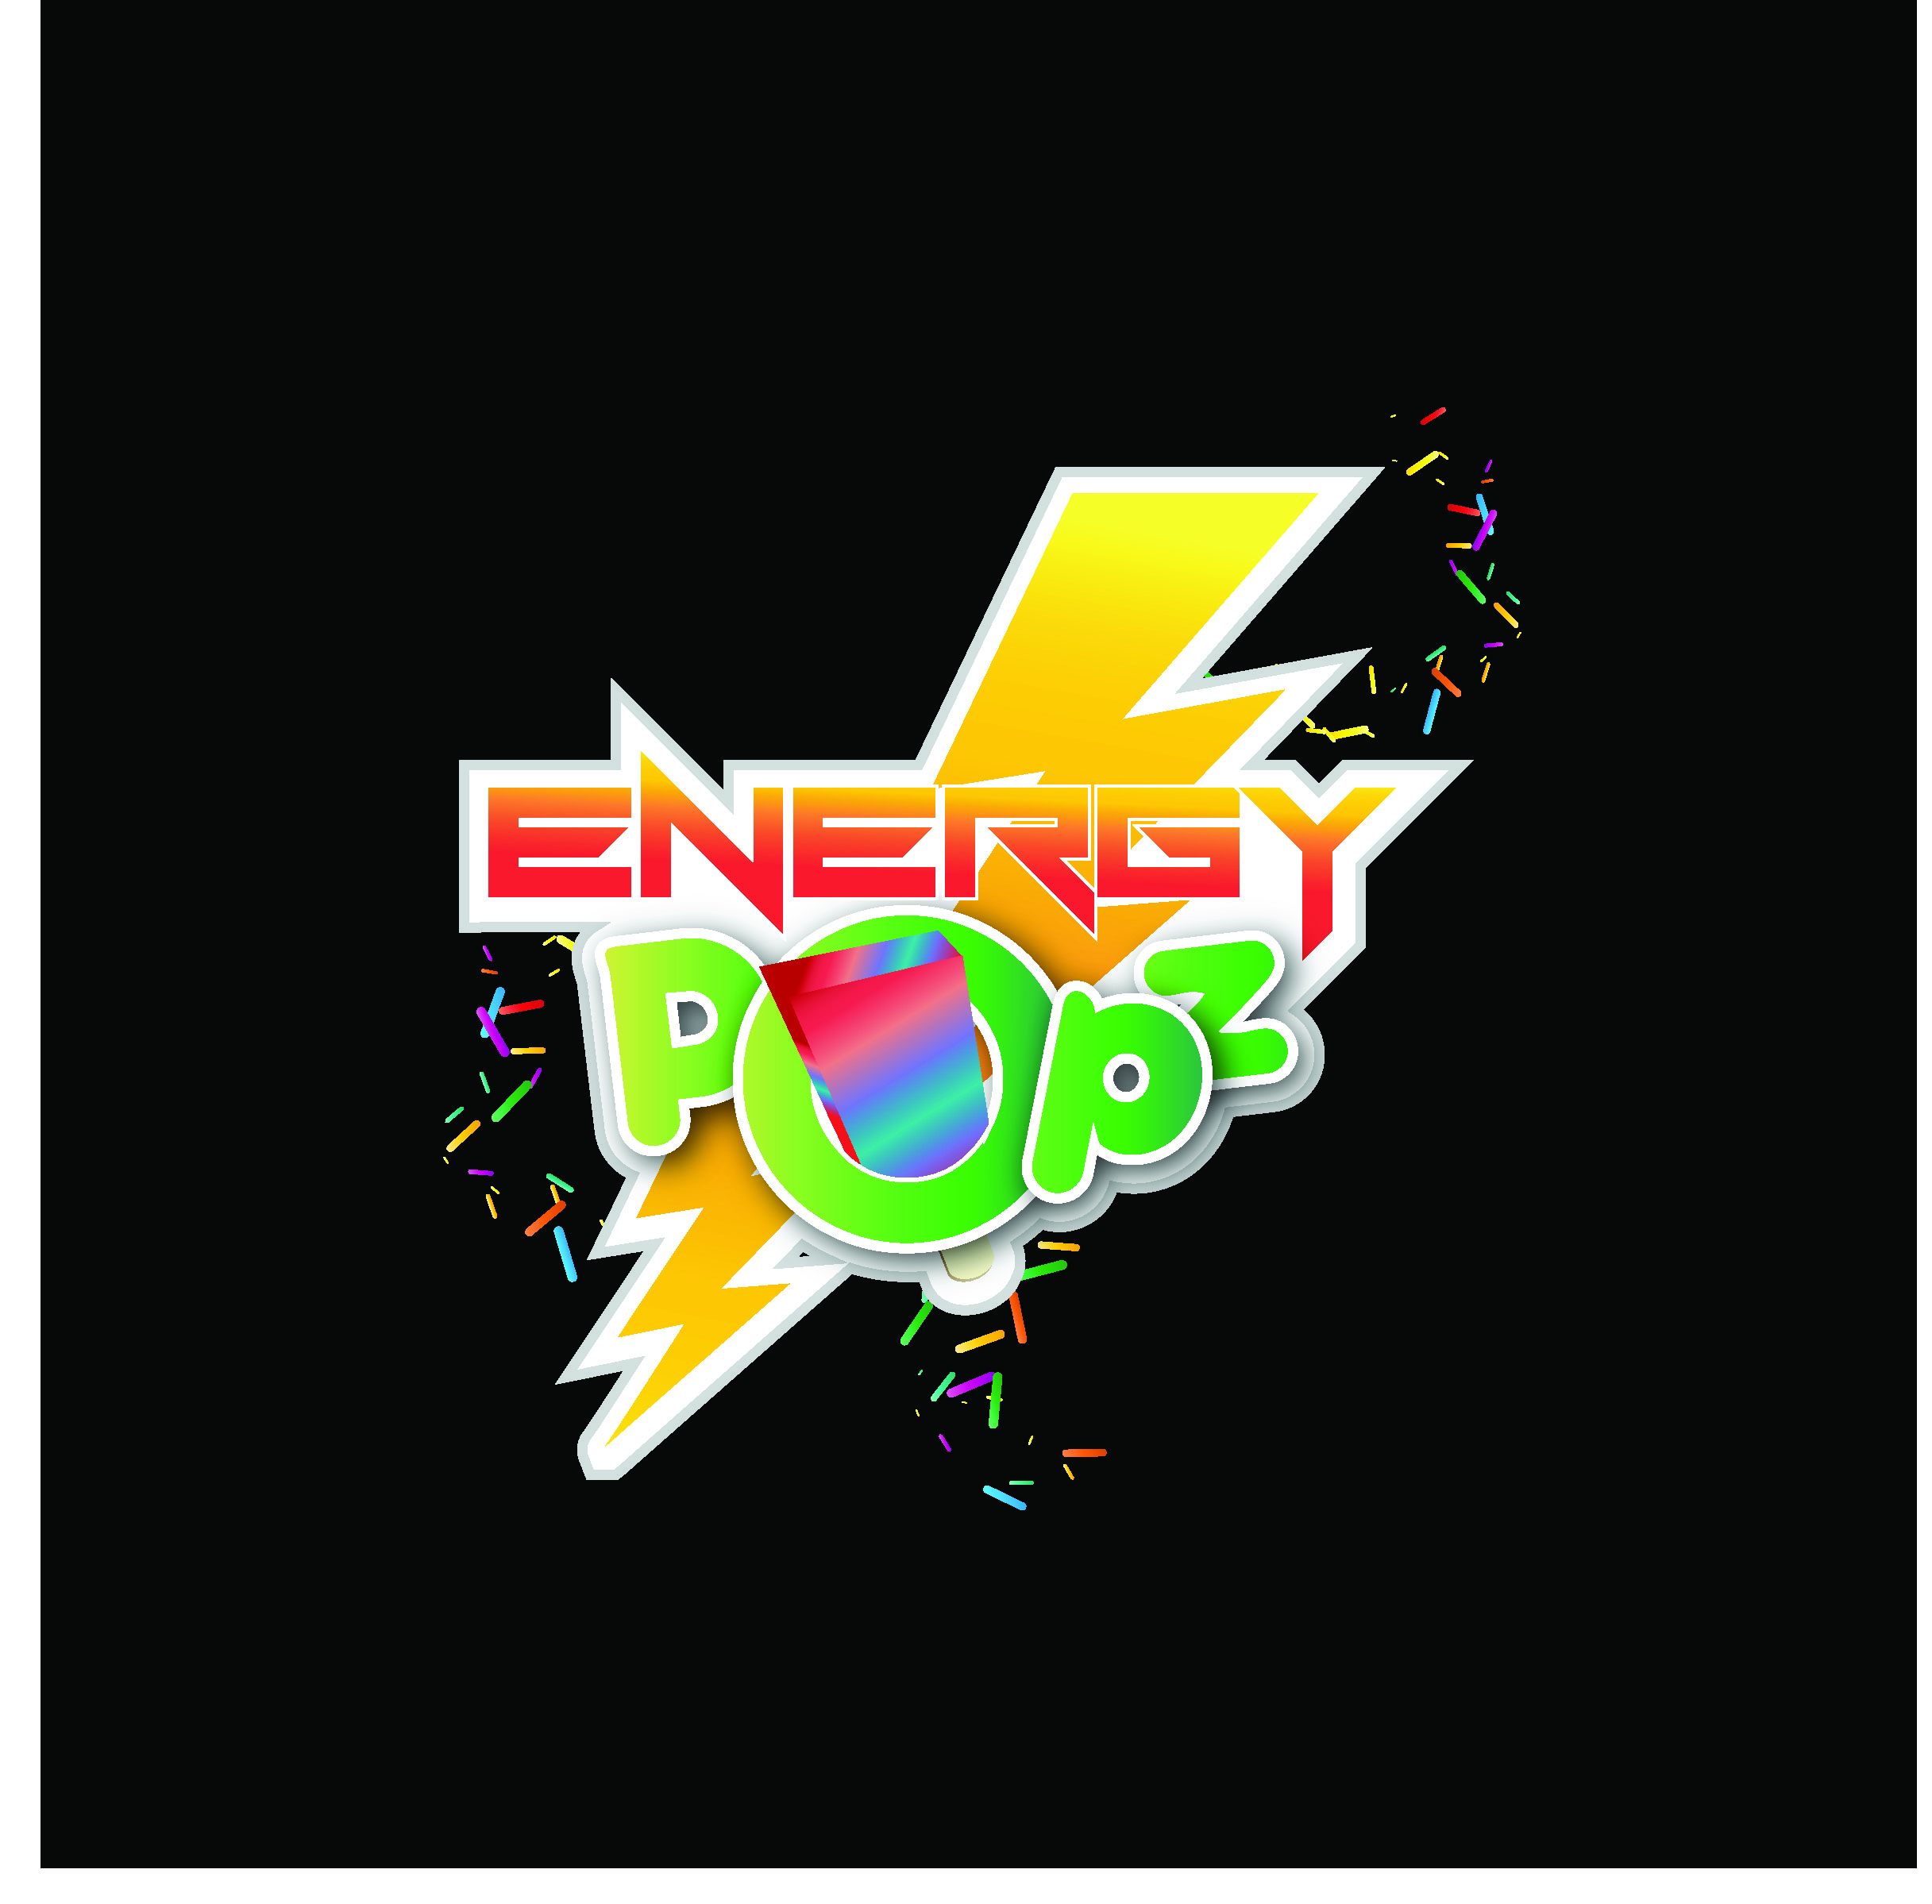 Logo Design by Sampath Gunathilaka - Entry No. 19 in the Logo Design Contest Energy Popz Logo Design.